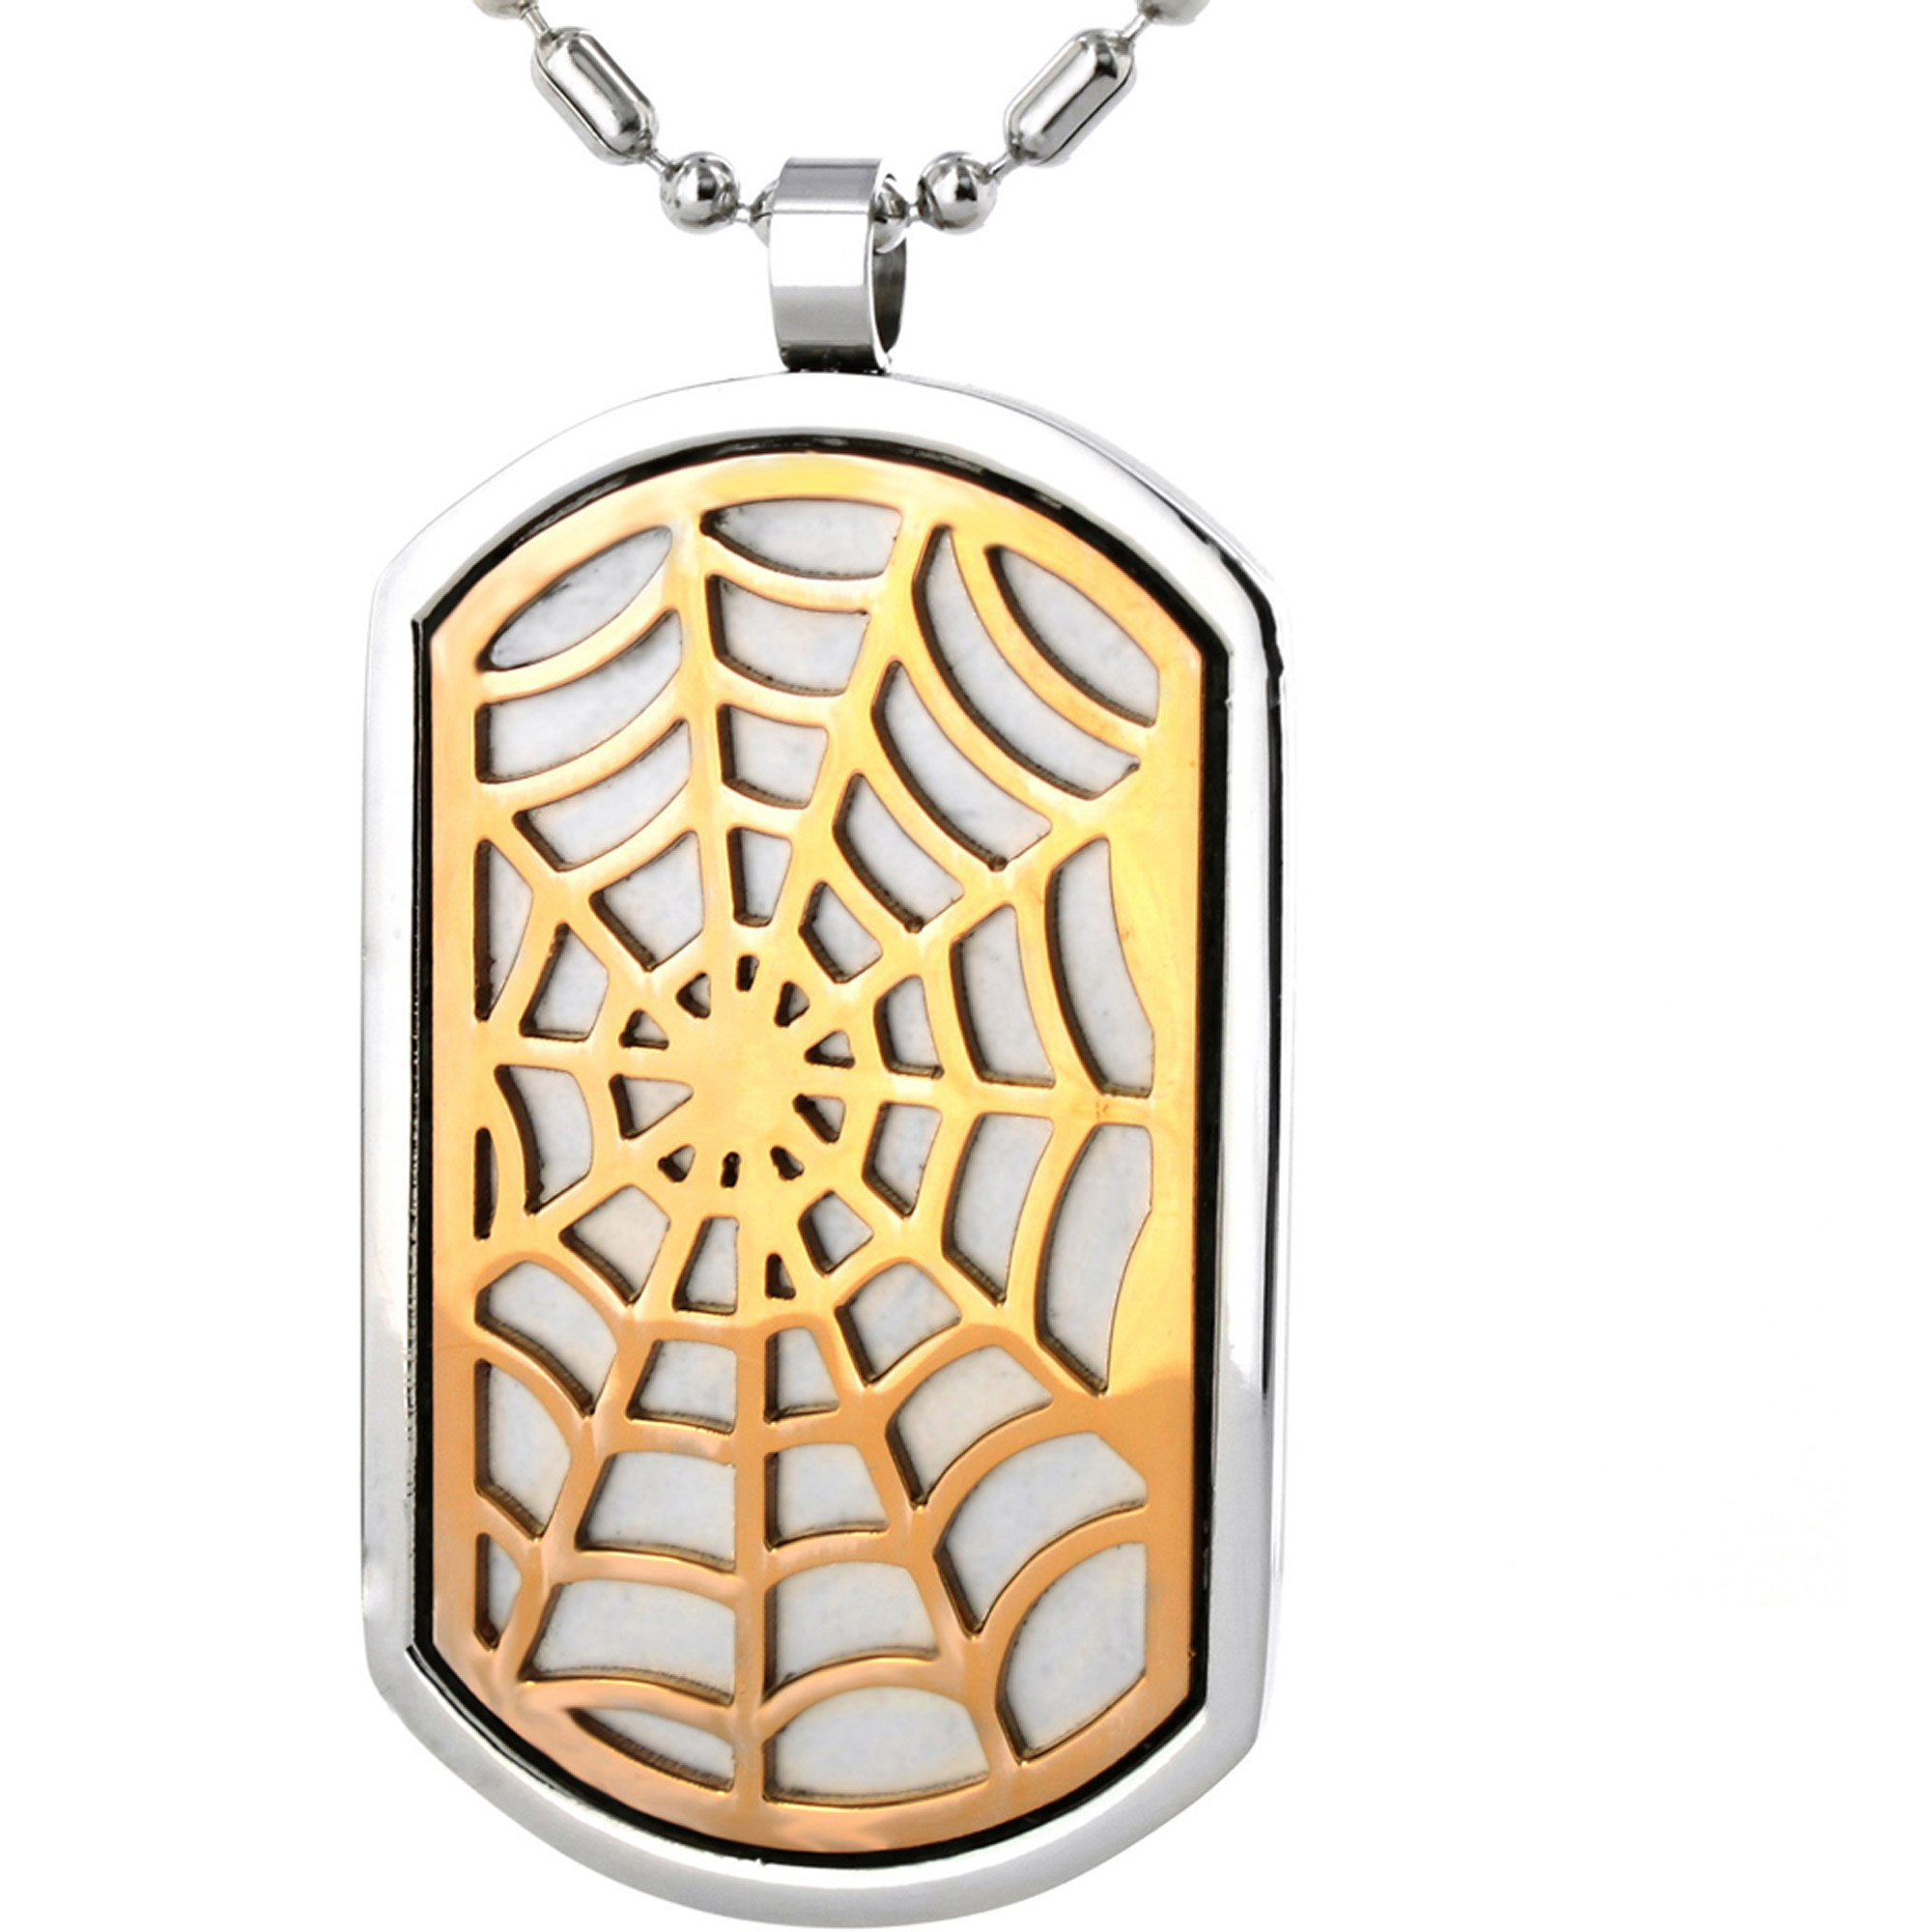 Stainless Steel Dog Tag Necklace with Bronze-Plated Web Design